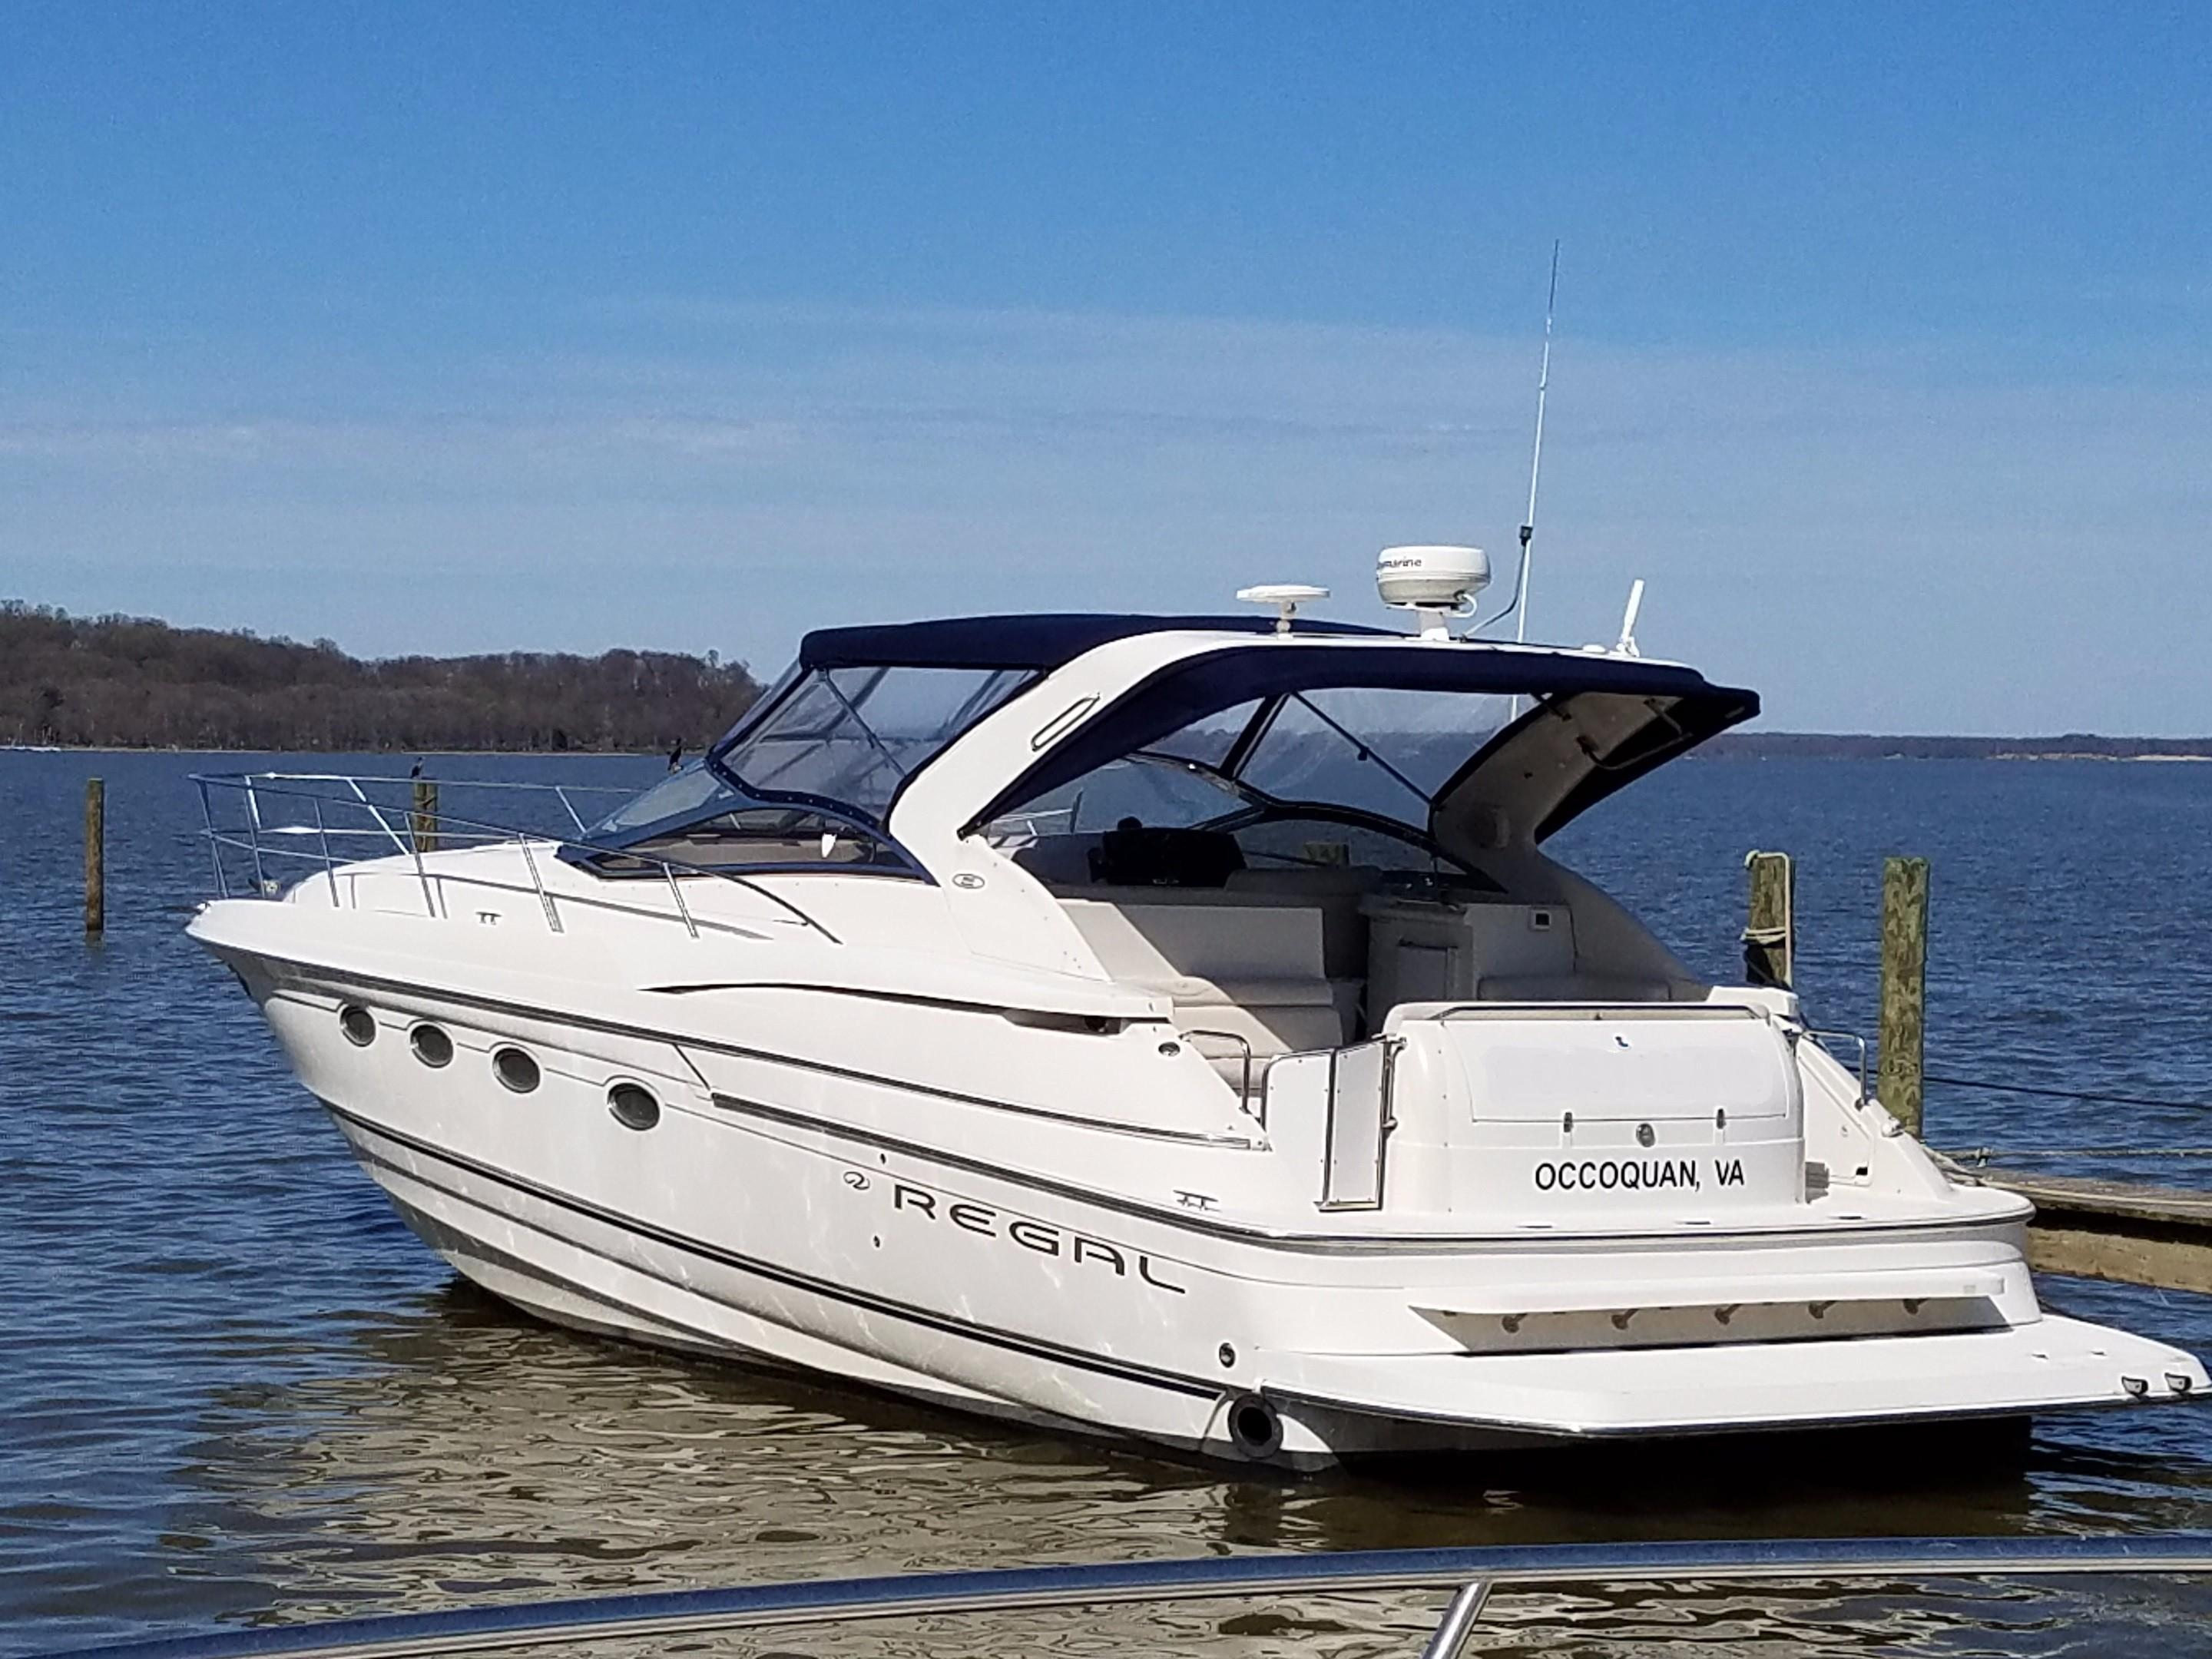 Boats For Sale In Va >> 2001 Regal 4160 Commodore Power Boat For Sale - www.yachtworld.com